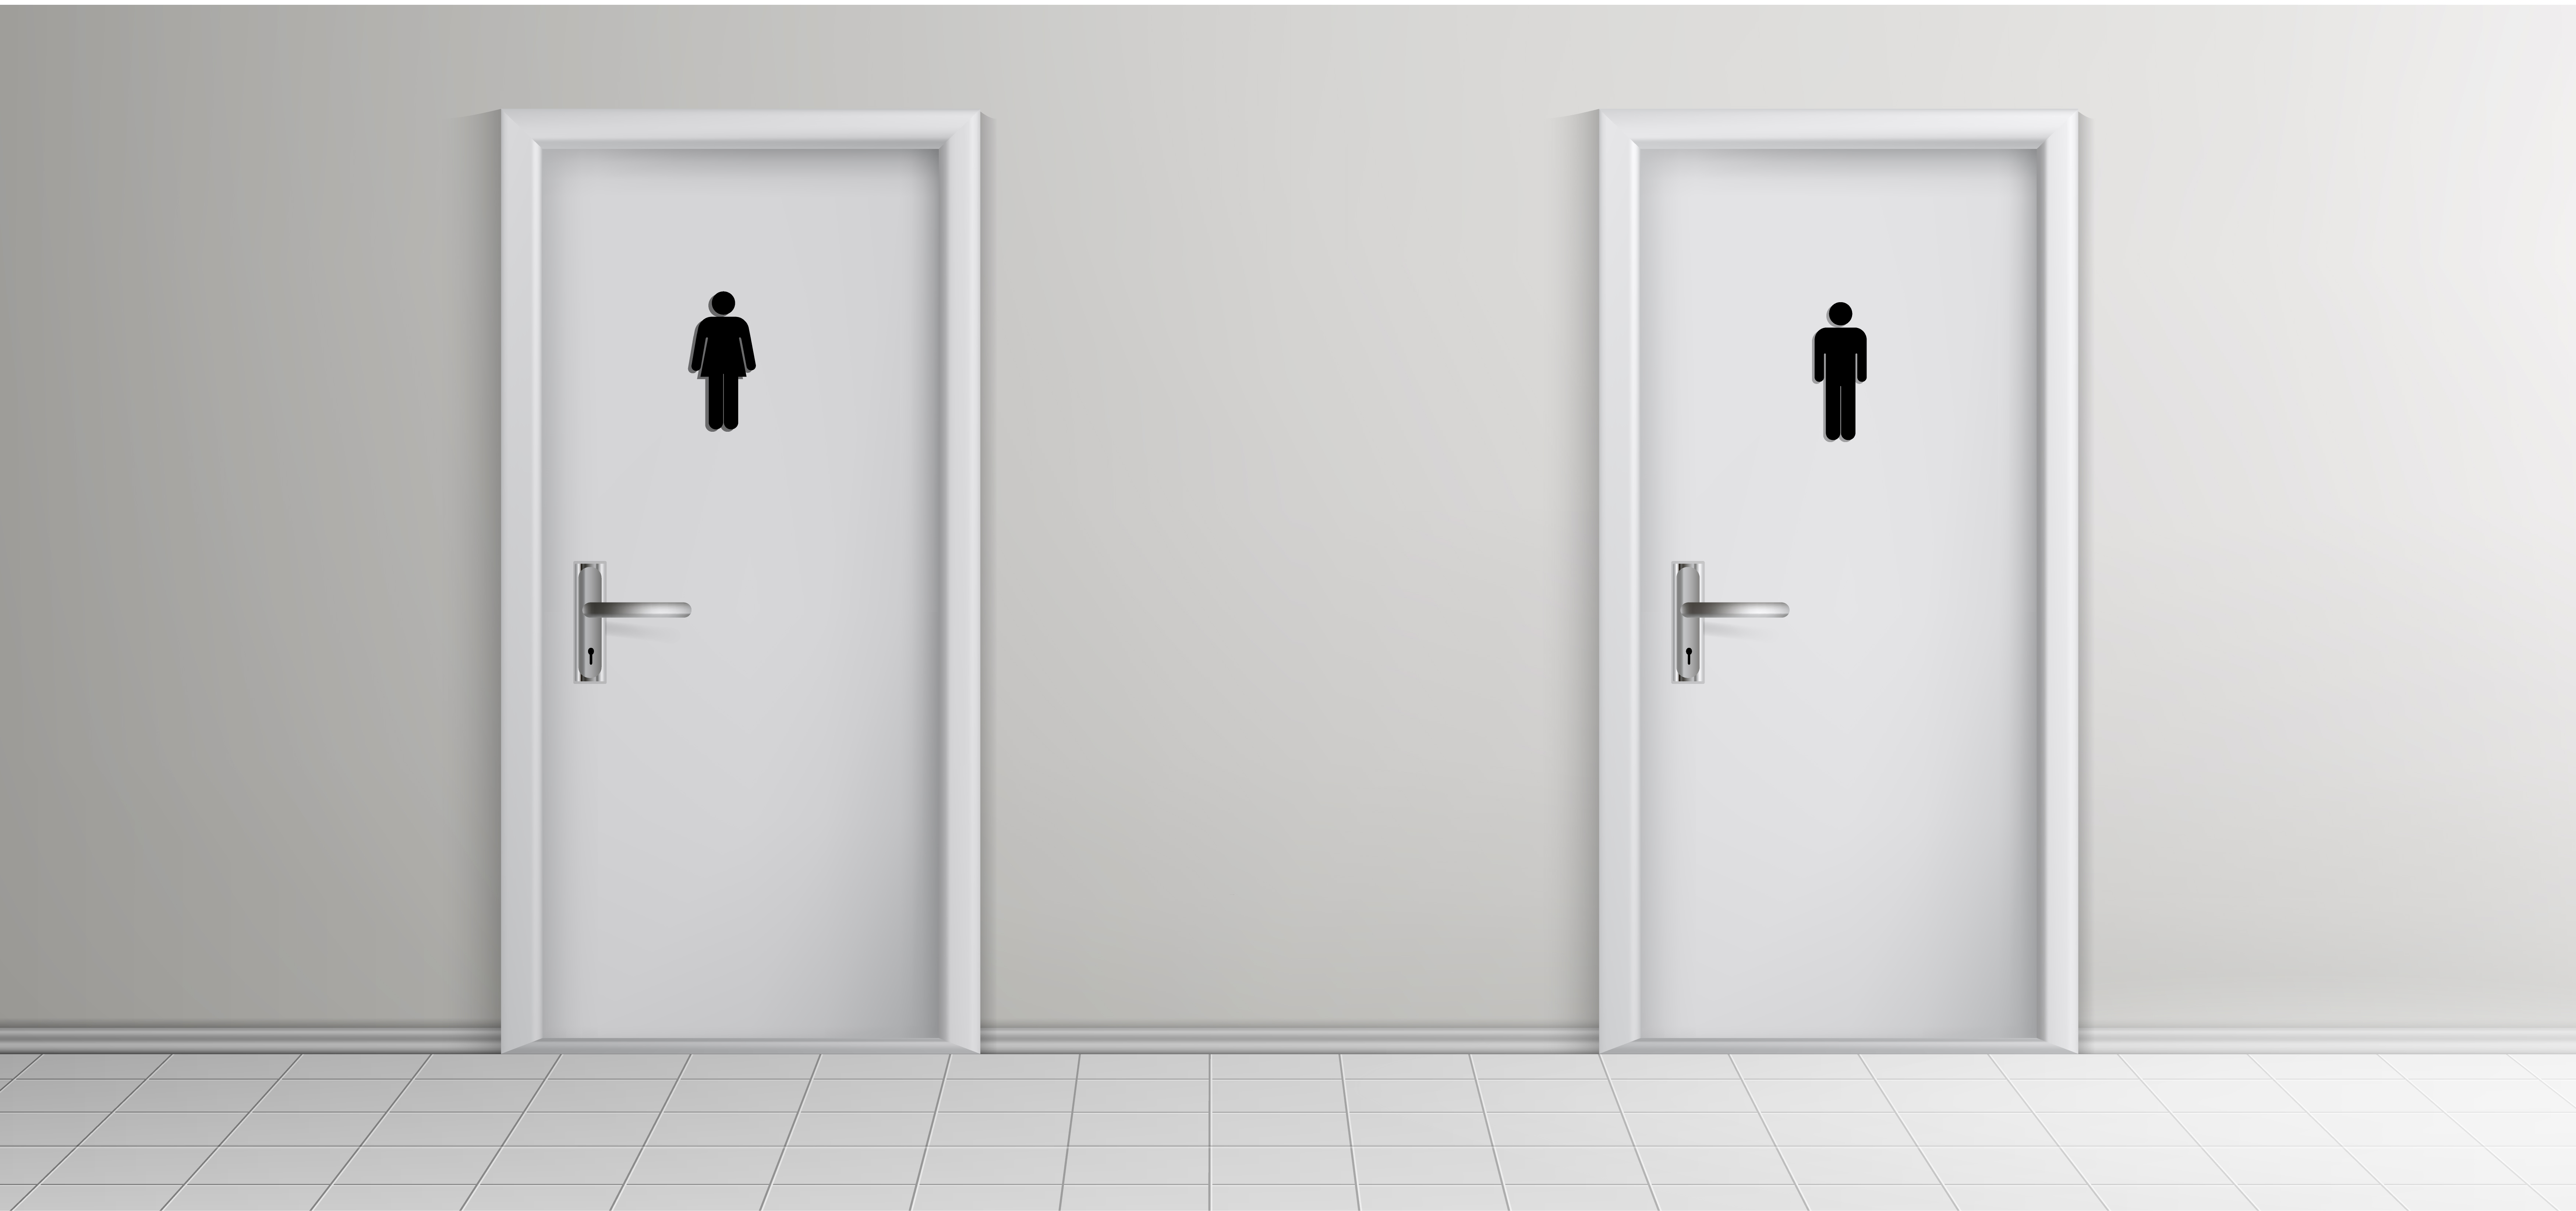 7 Ways To Improve Your Office Bathroom Hygiene and Cleanliness